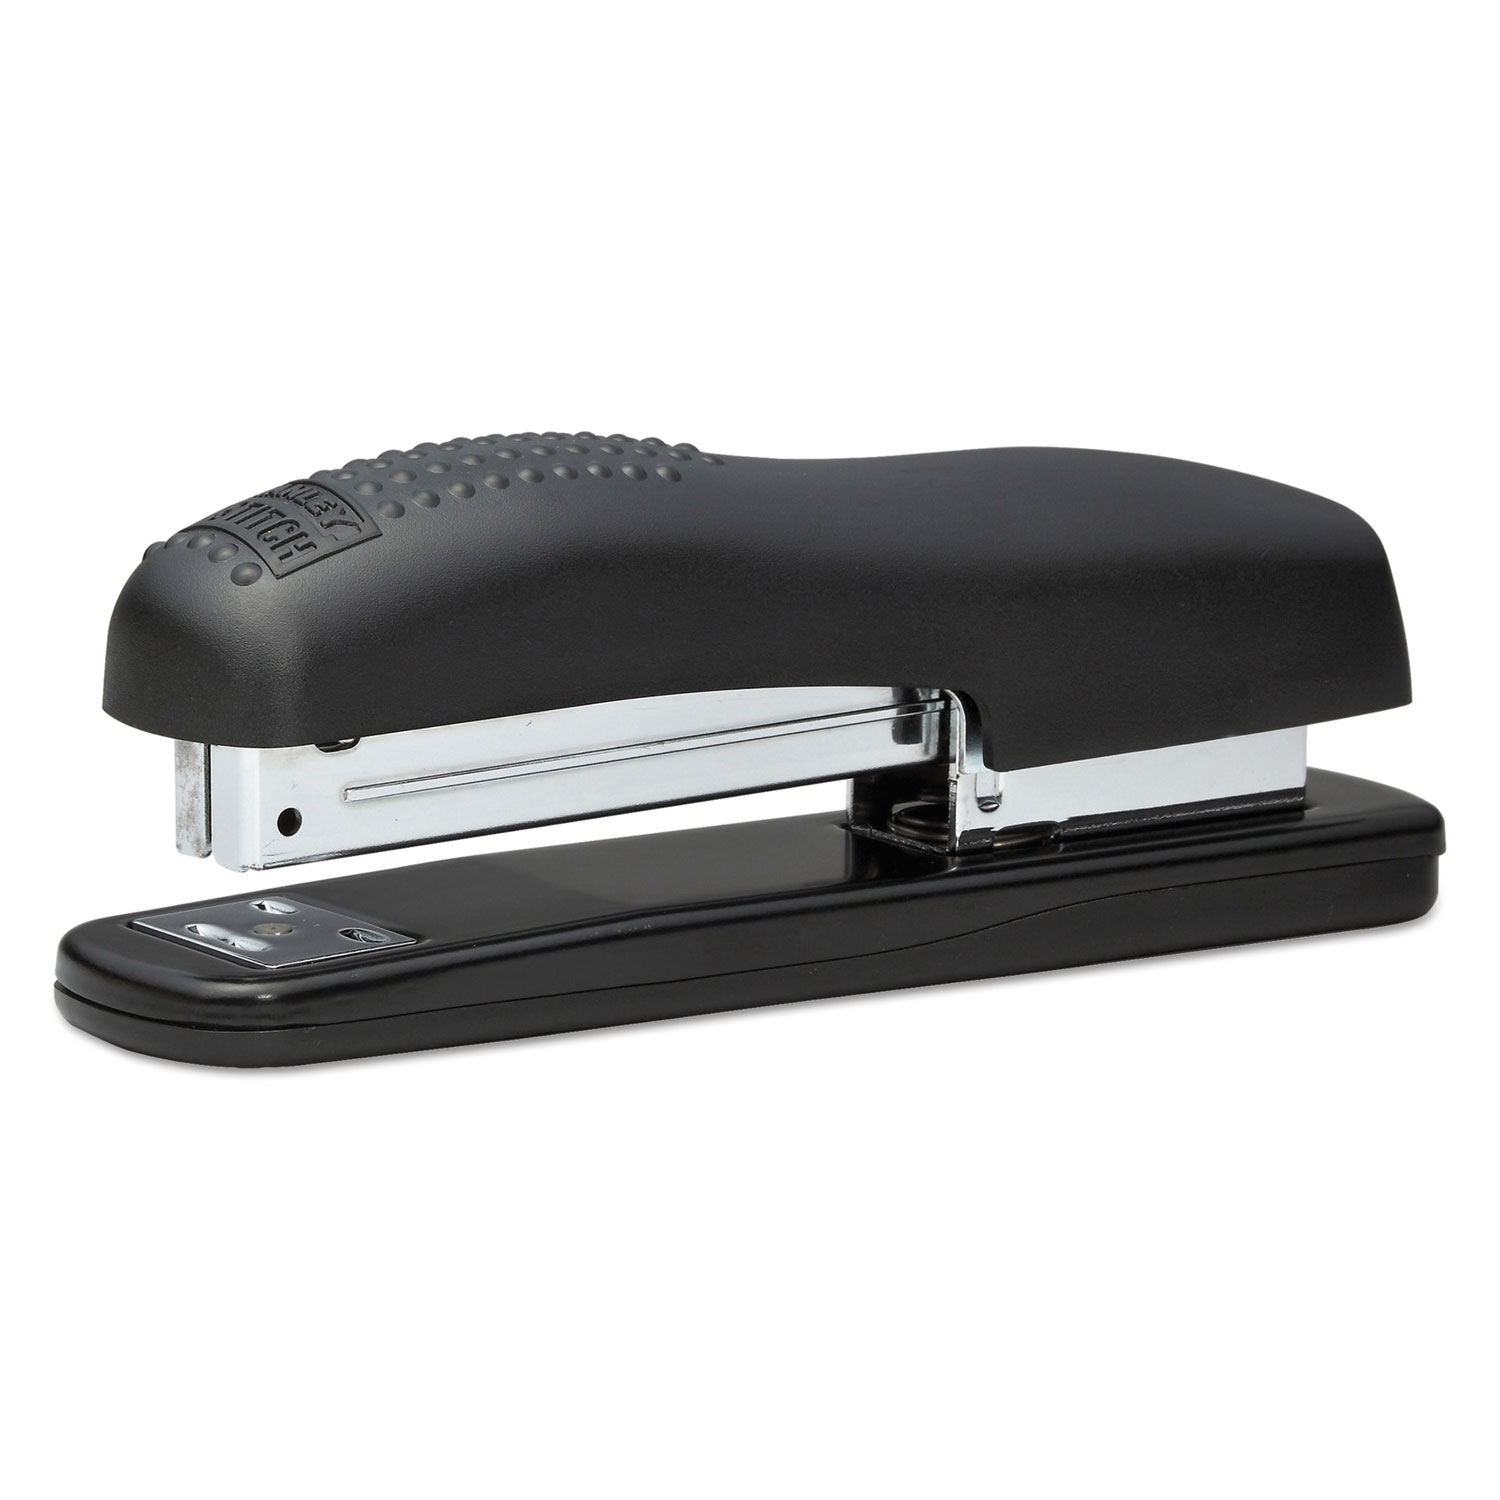 Ergonomic Desktop Stapler, 20-Sheet Capacity, Black